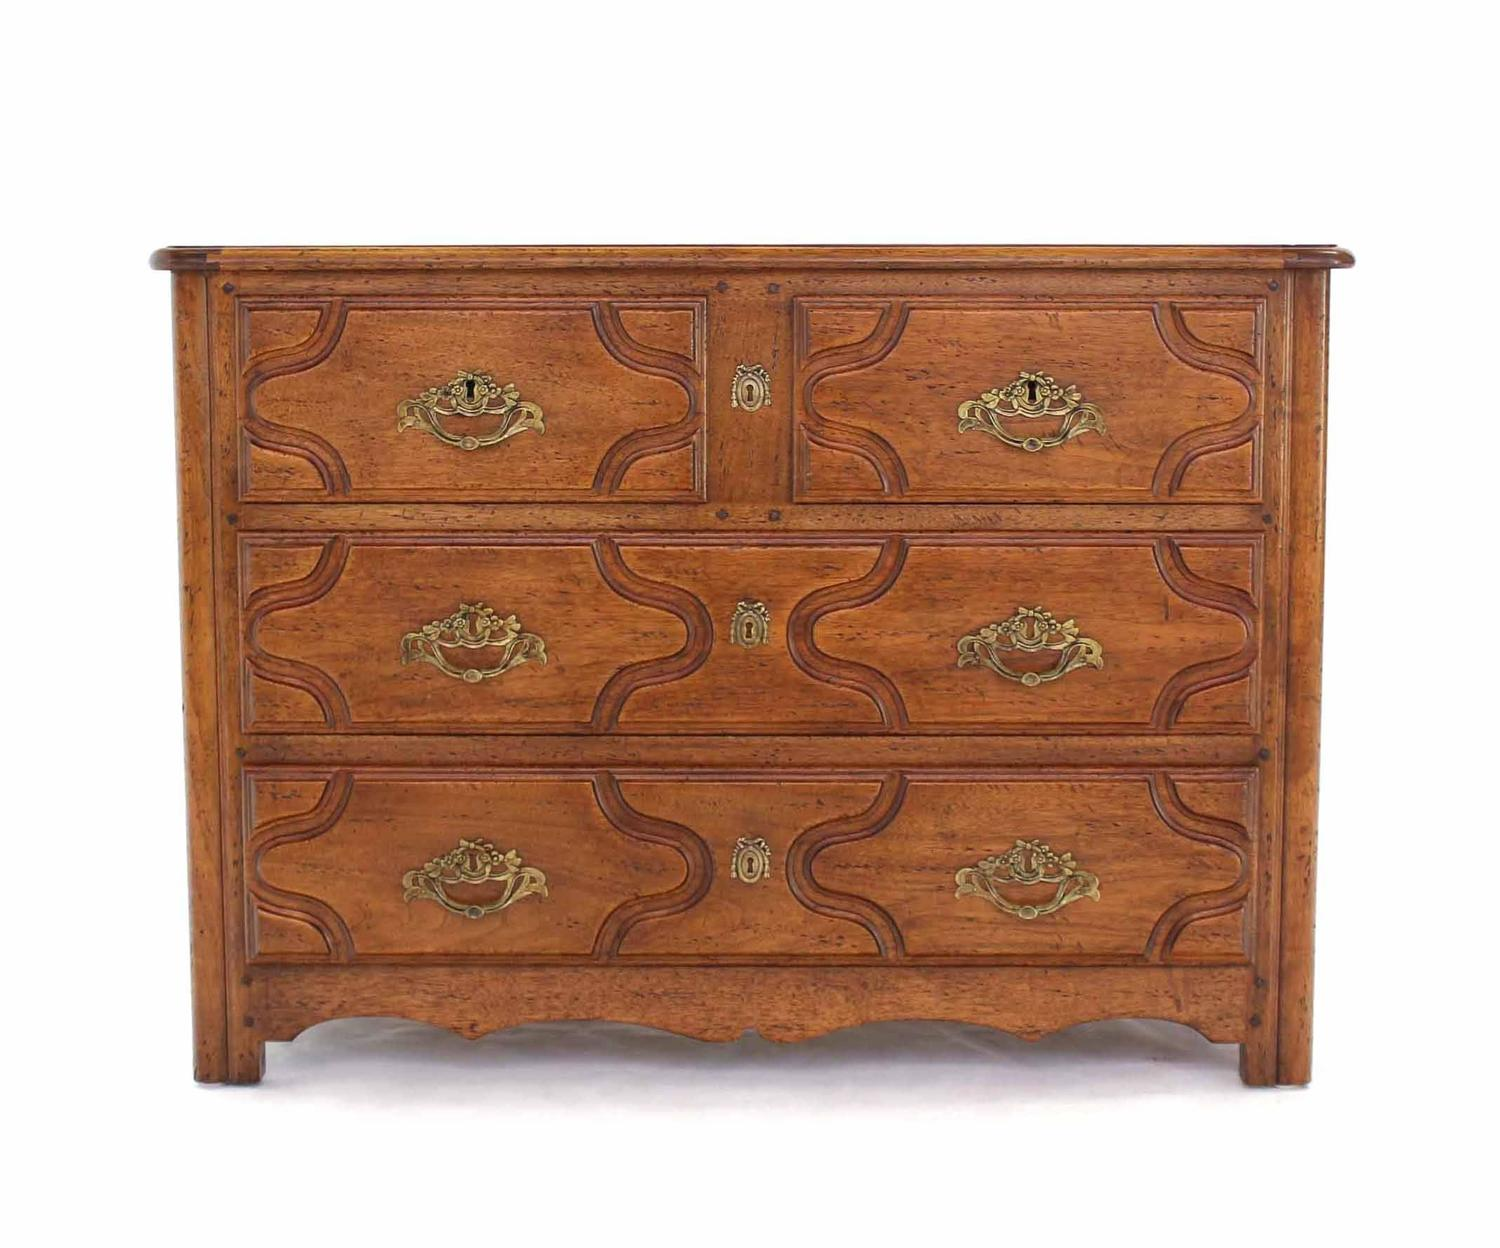 #83492C Solid Wood Gothic Three Drawer Chest Of Drawers For Sale At 1stdibs with 1500x1248 px of Best Chest Of Drawers Solid Wood 12481500 image @ avoidforclosure.info